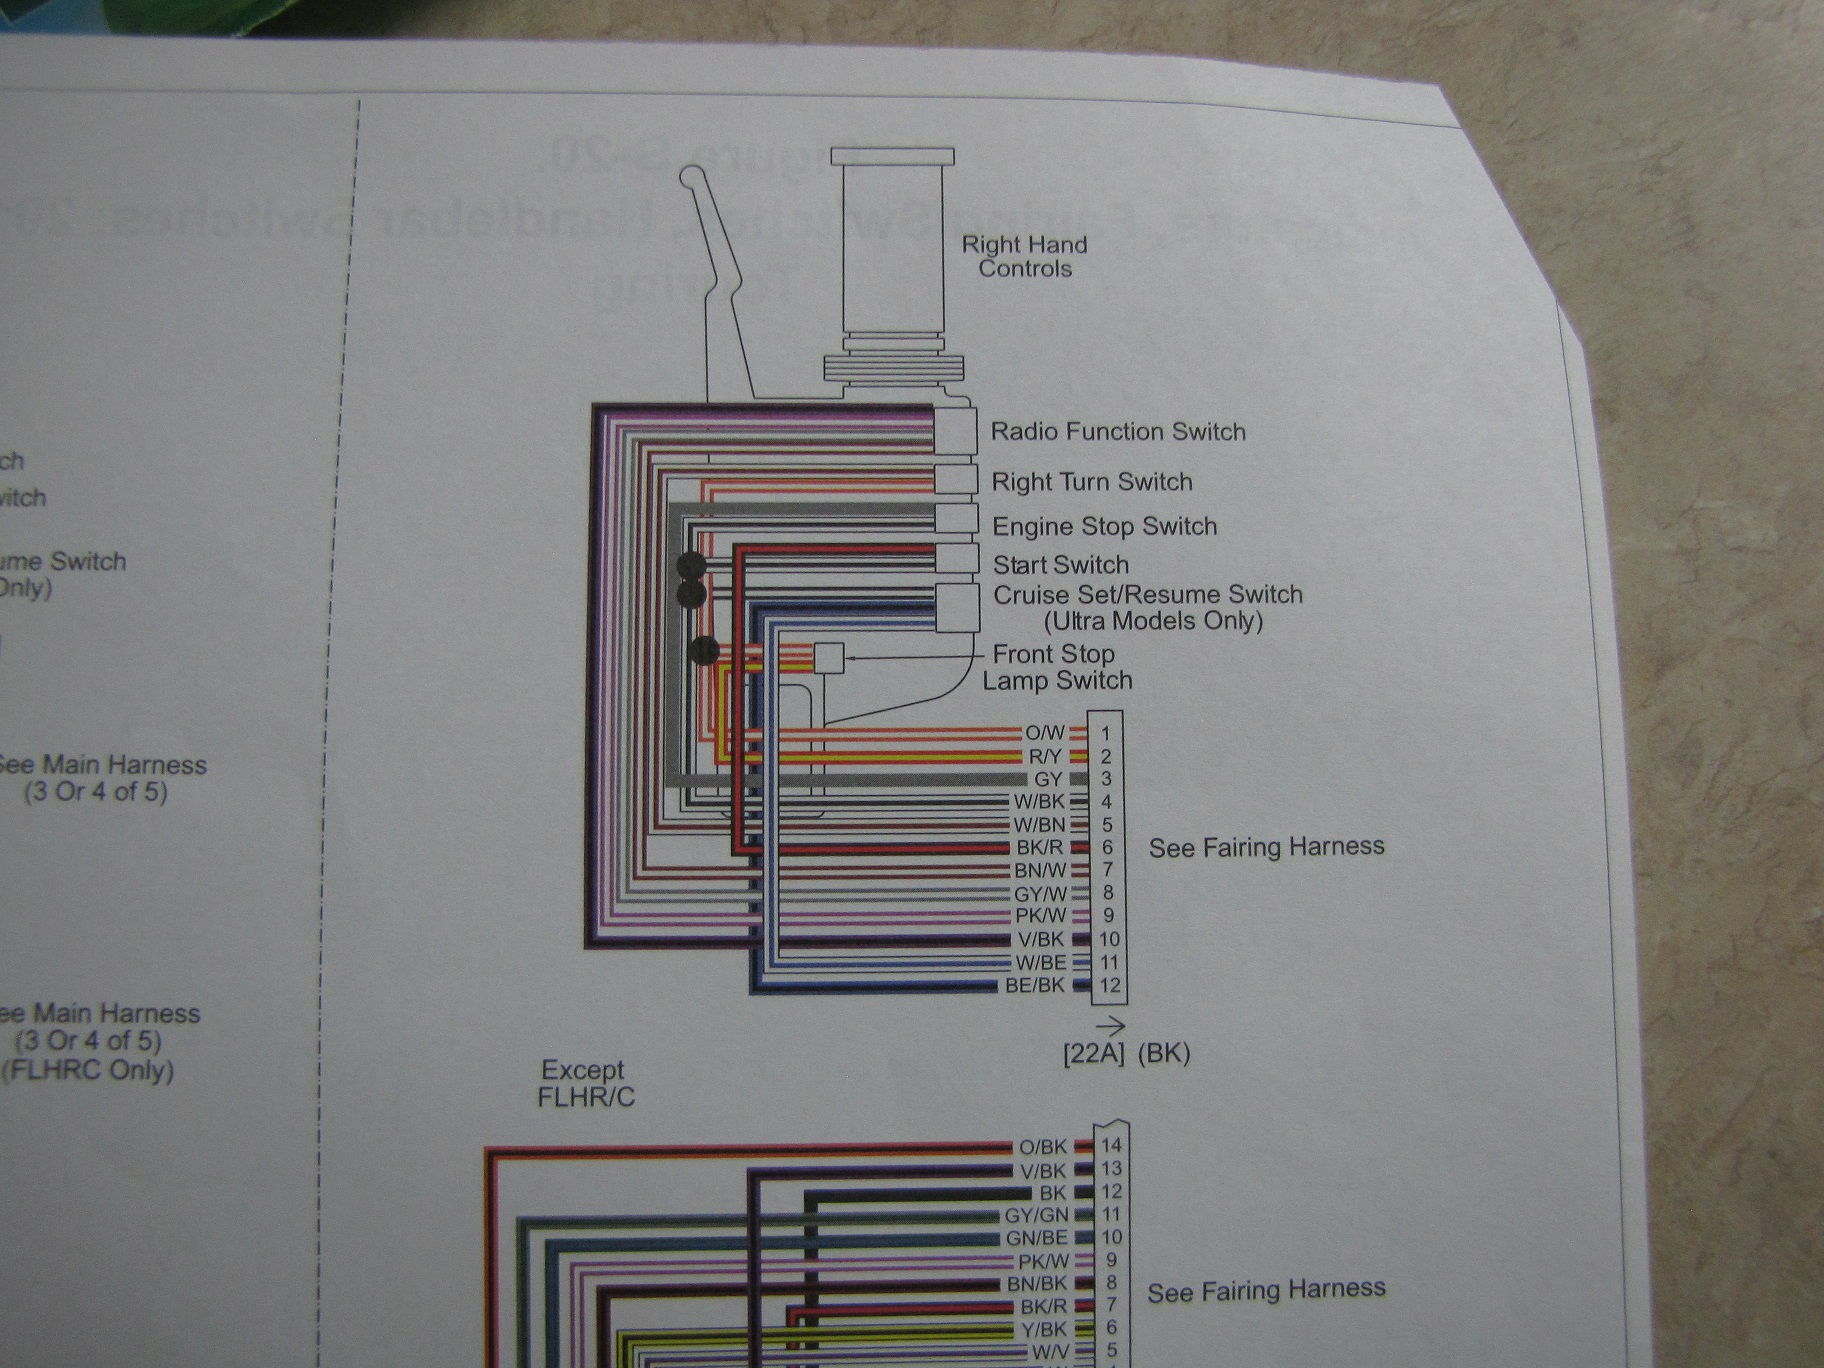 80 img_7129_dfe821bf4522af92b0010ab47946e39a68f87097 wiring diagram 2013 street glide harley davidson forums Custom Radio Wiring Diagram at bayanpartner.co